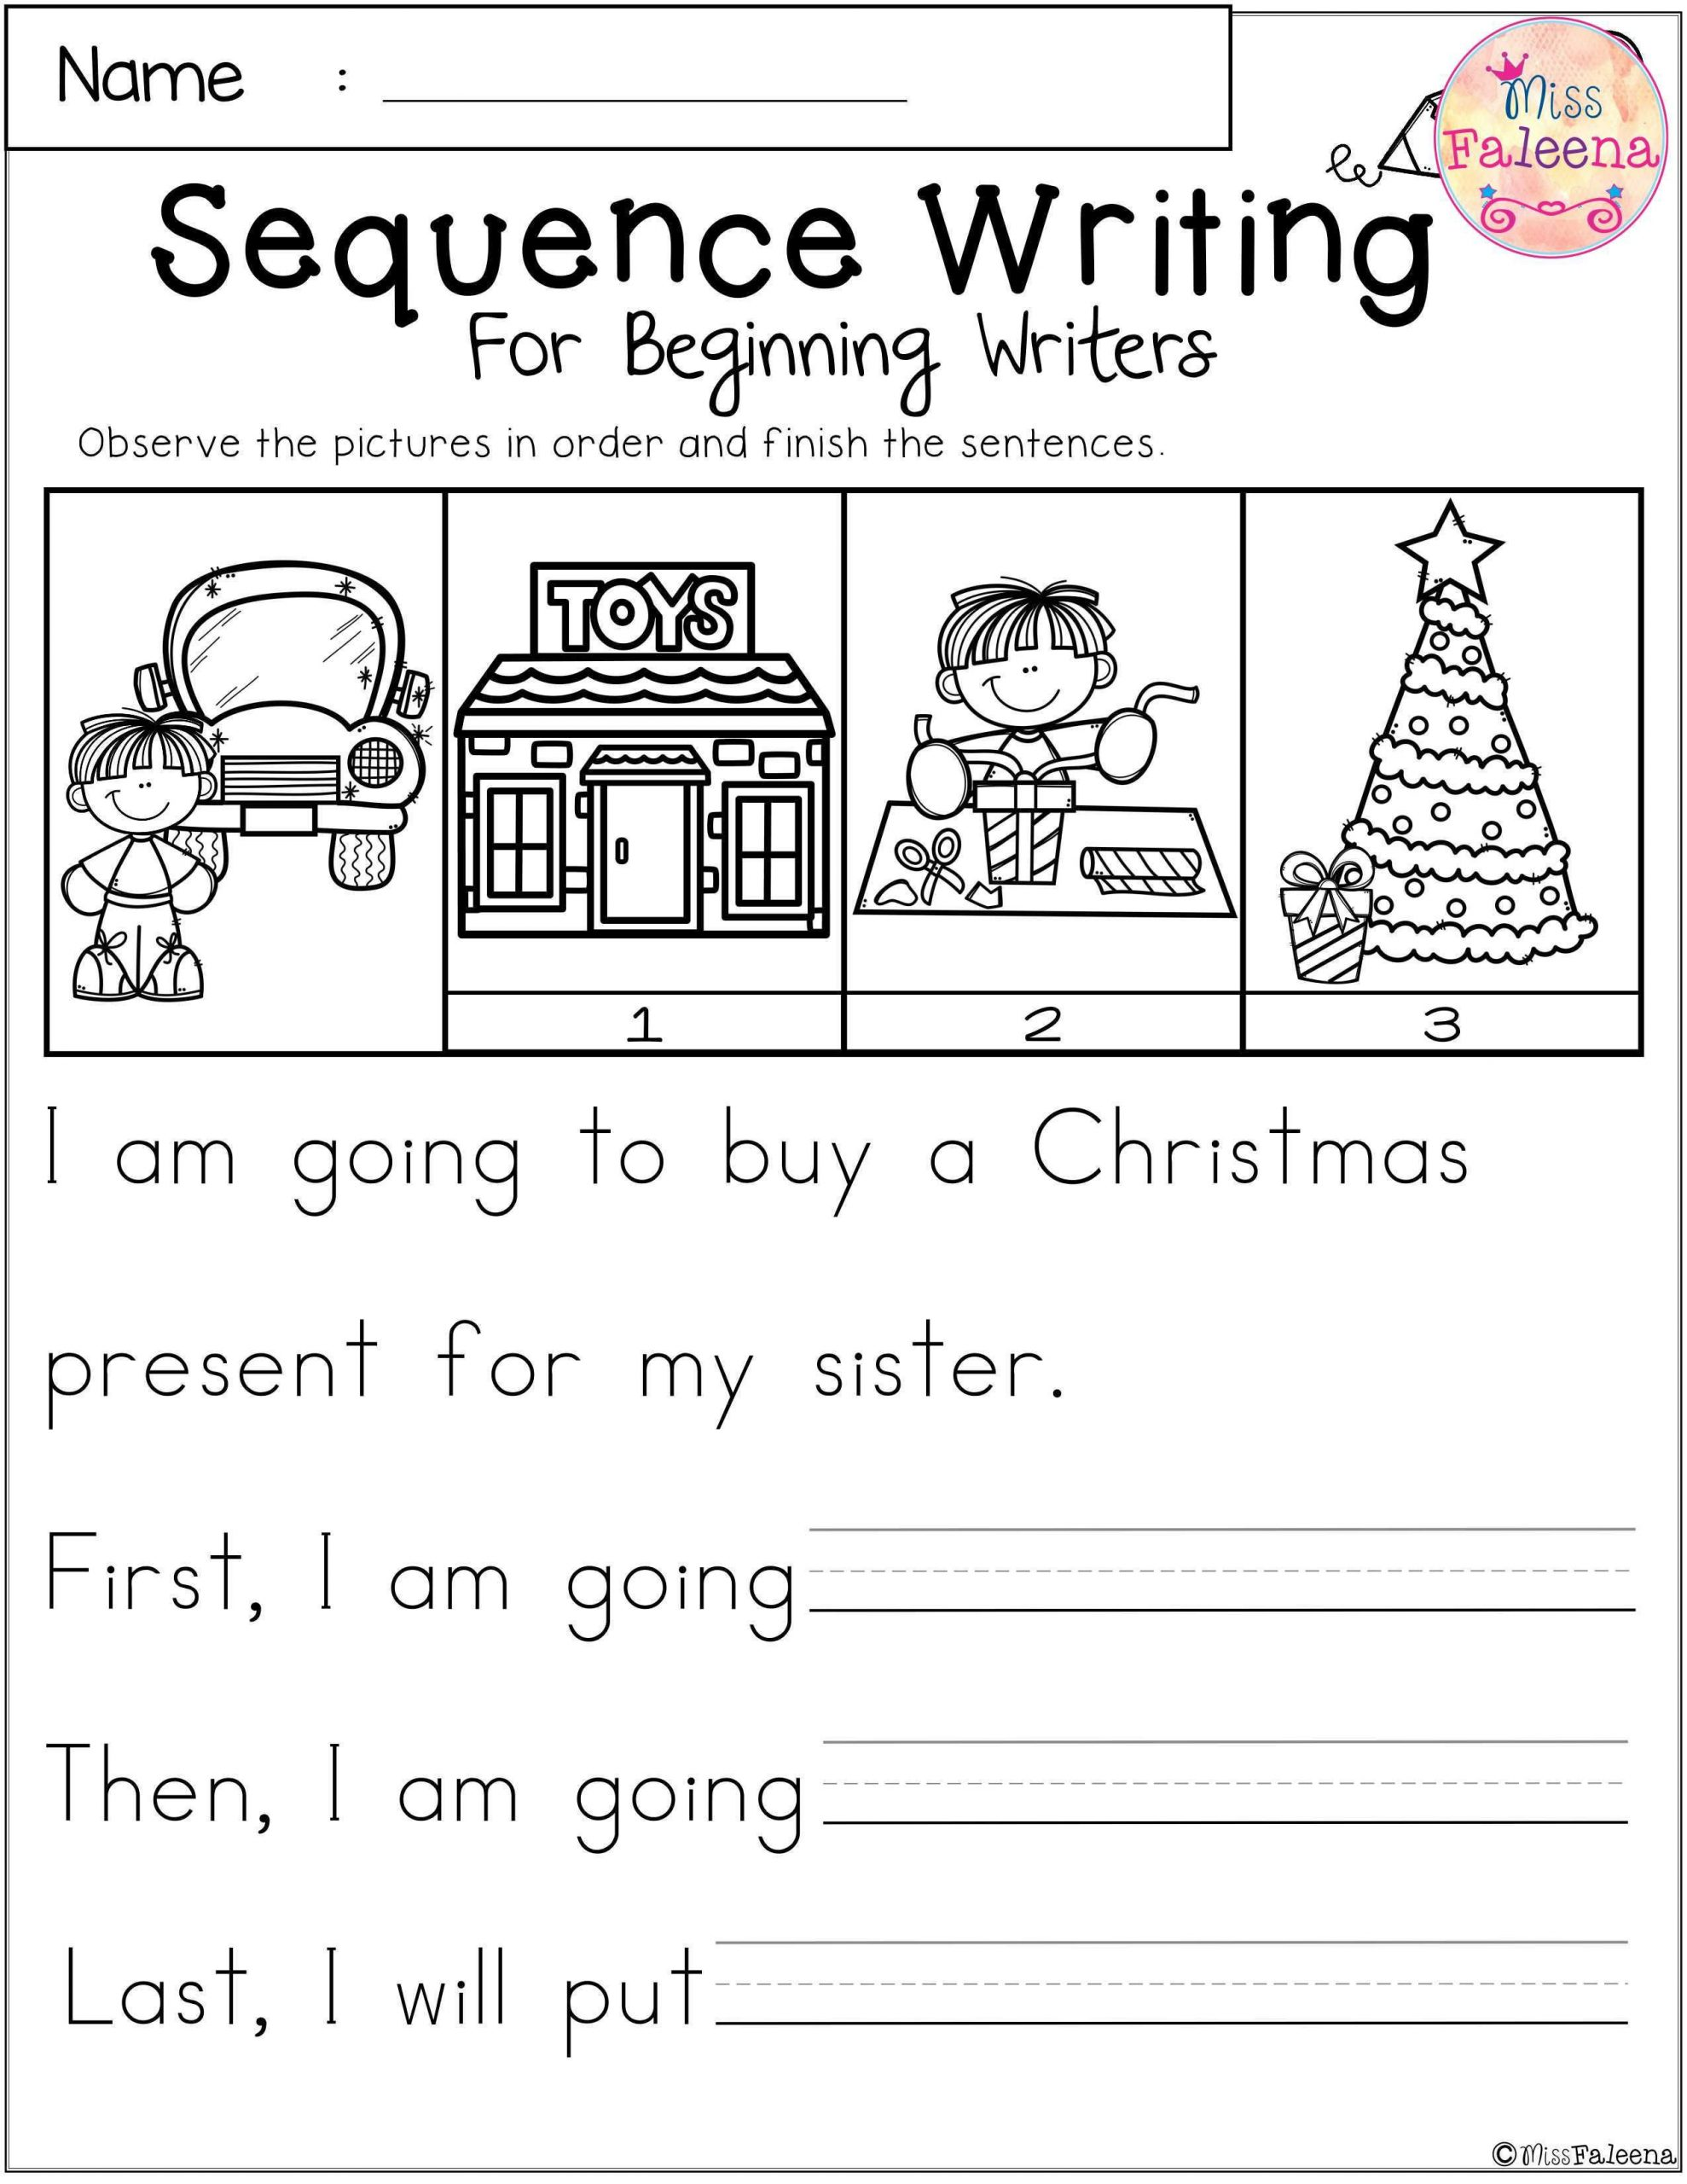 Sequence Worksheets for 3rd Grade December Sequence Writing for Beginning Writers